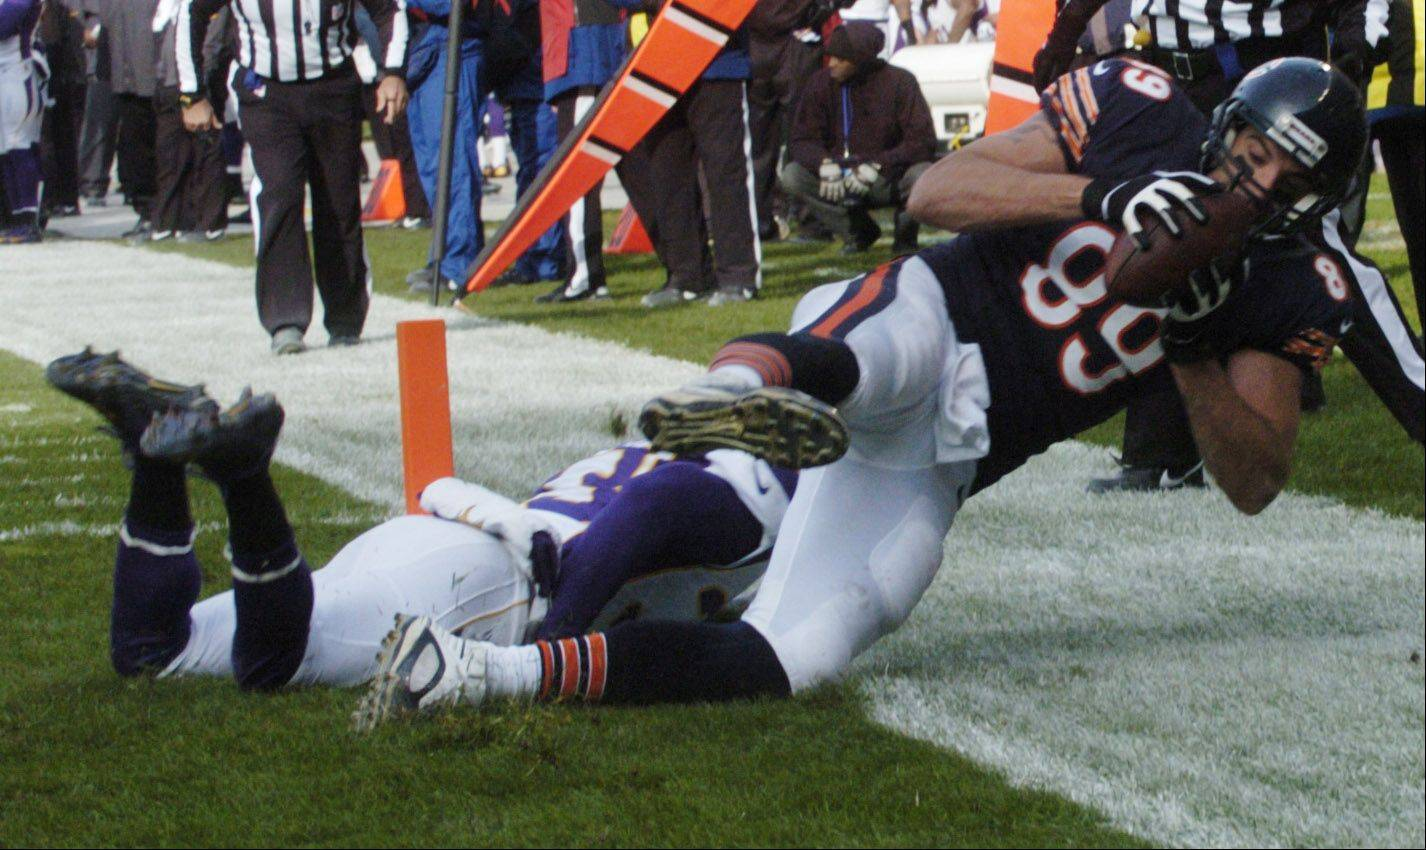 Chicago Bears' tight end Matt Spaeth makes a second-quarter touchdown catch against the Minnesota Vikings' Jamarca Sanford at Soldier Field Sunday.